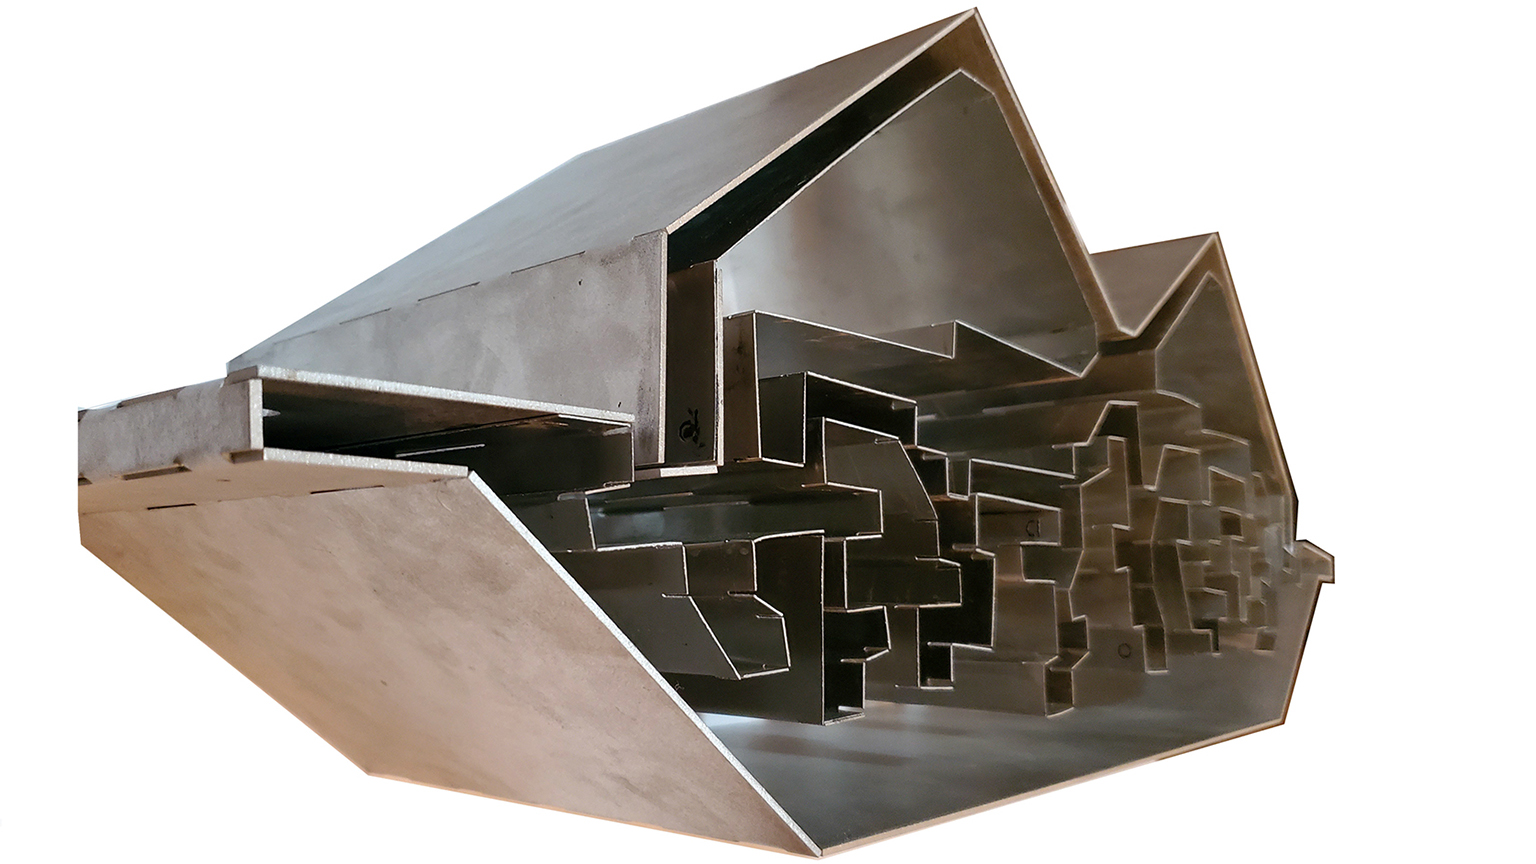 Metal model of a section of a building by Barrett Blaker from the Spring 2020 Core II Studio